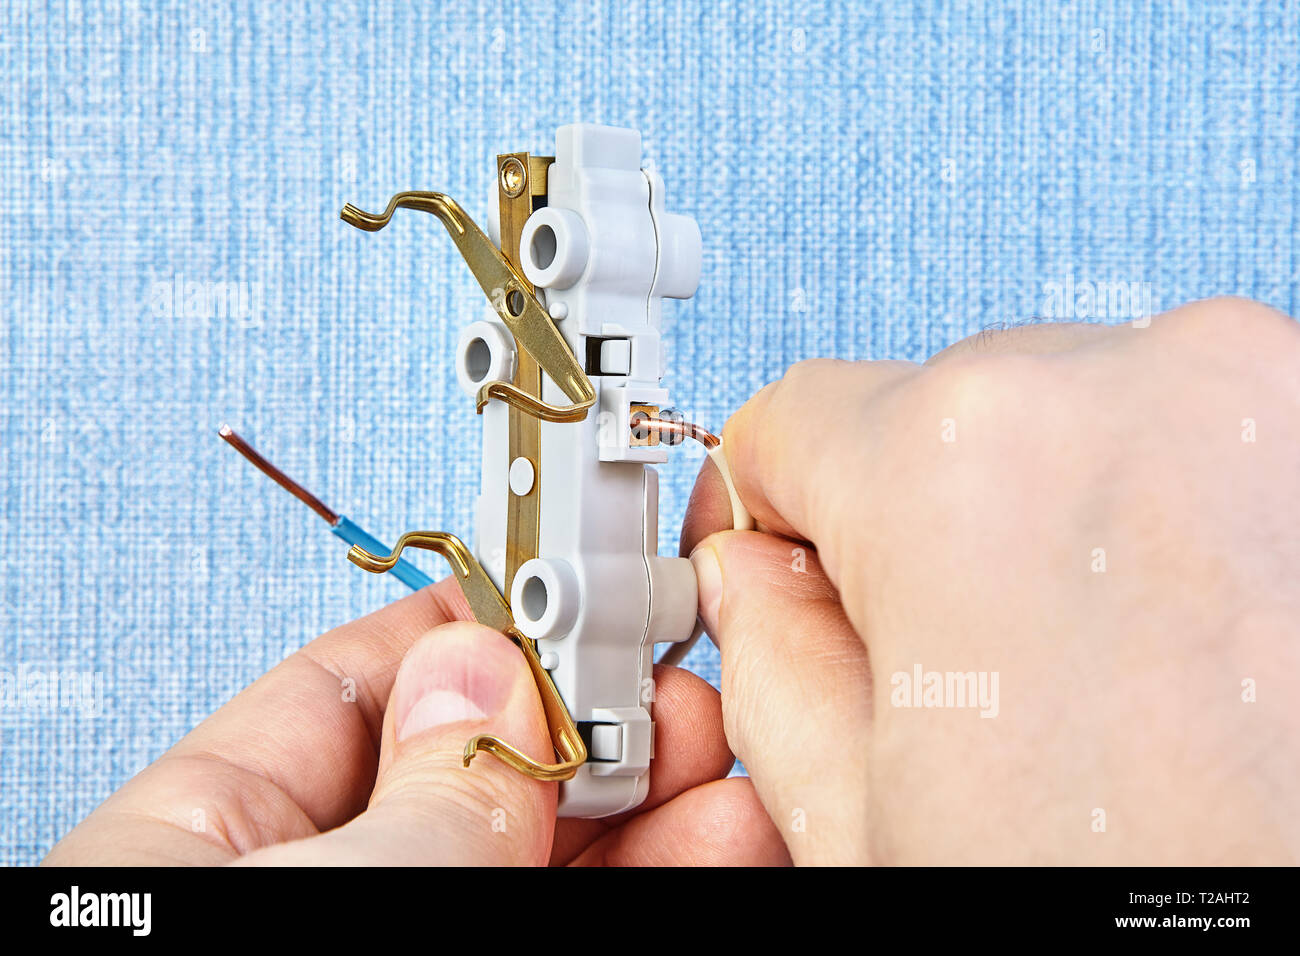 hight resolution of worker is installing electric plug house wiring close up stock image